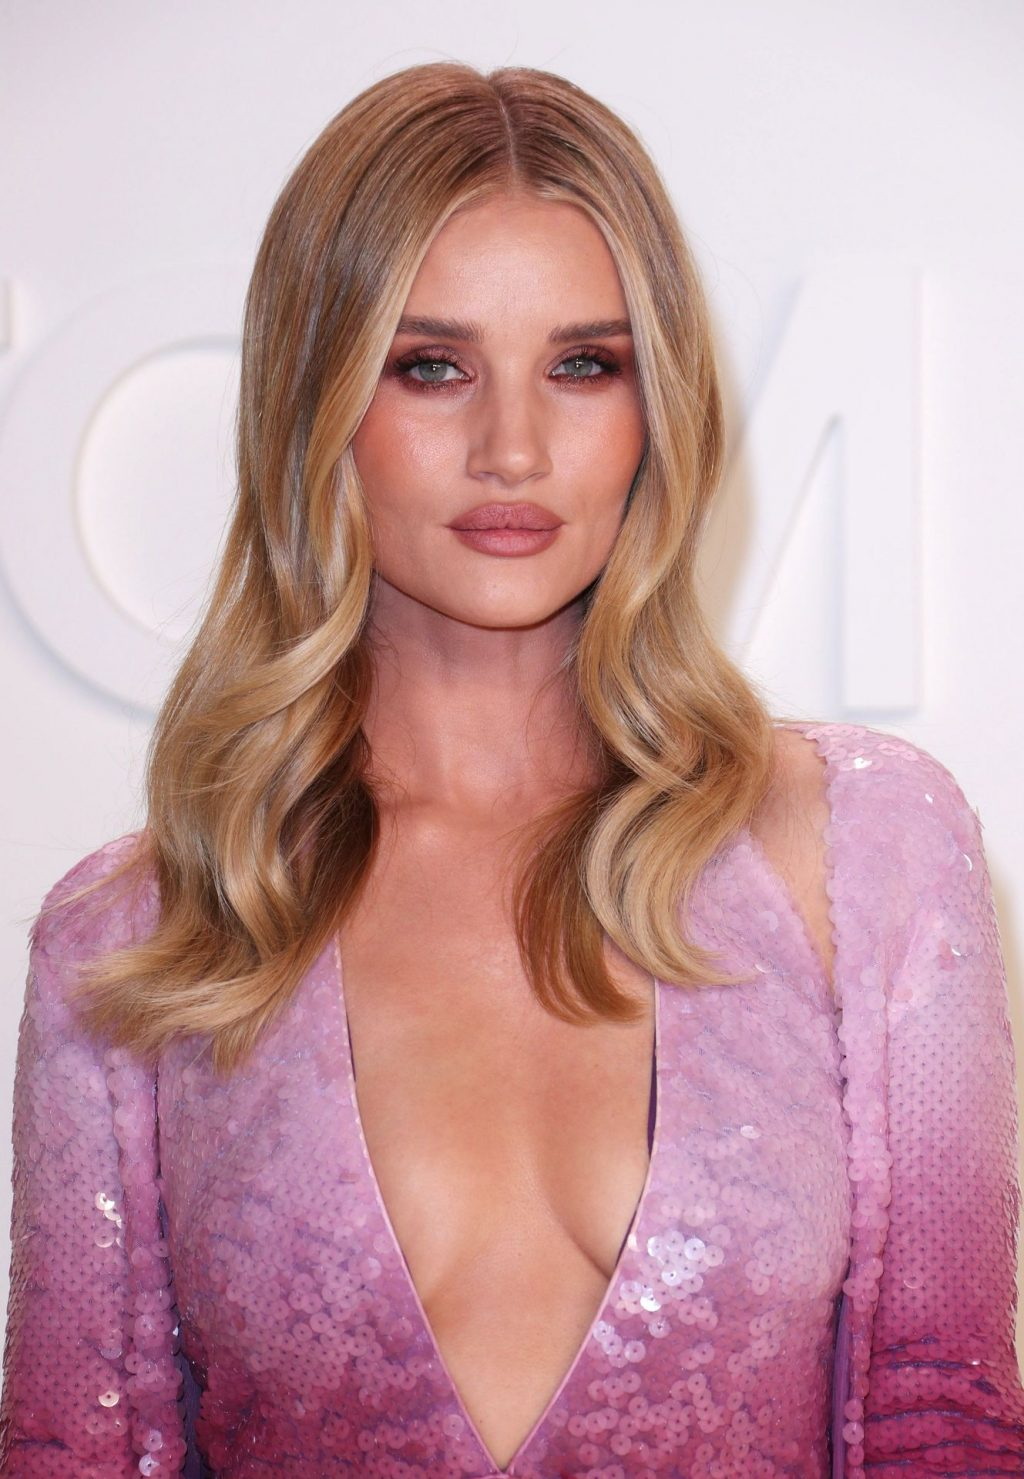 Rosie Huntington Whiteley Sexy The Fappening Blog 35 1024x1479 - Rosie Huntington-Whiteley Shows Her Cleavage at the Tom Ford Fashion Show (115 Photos)